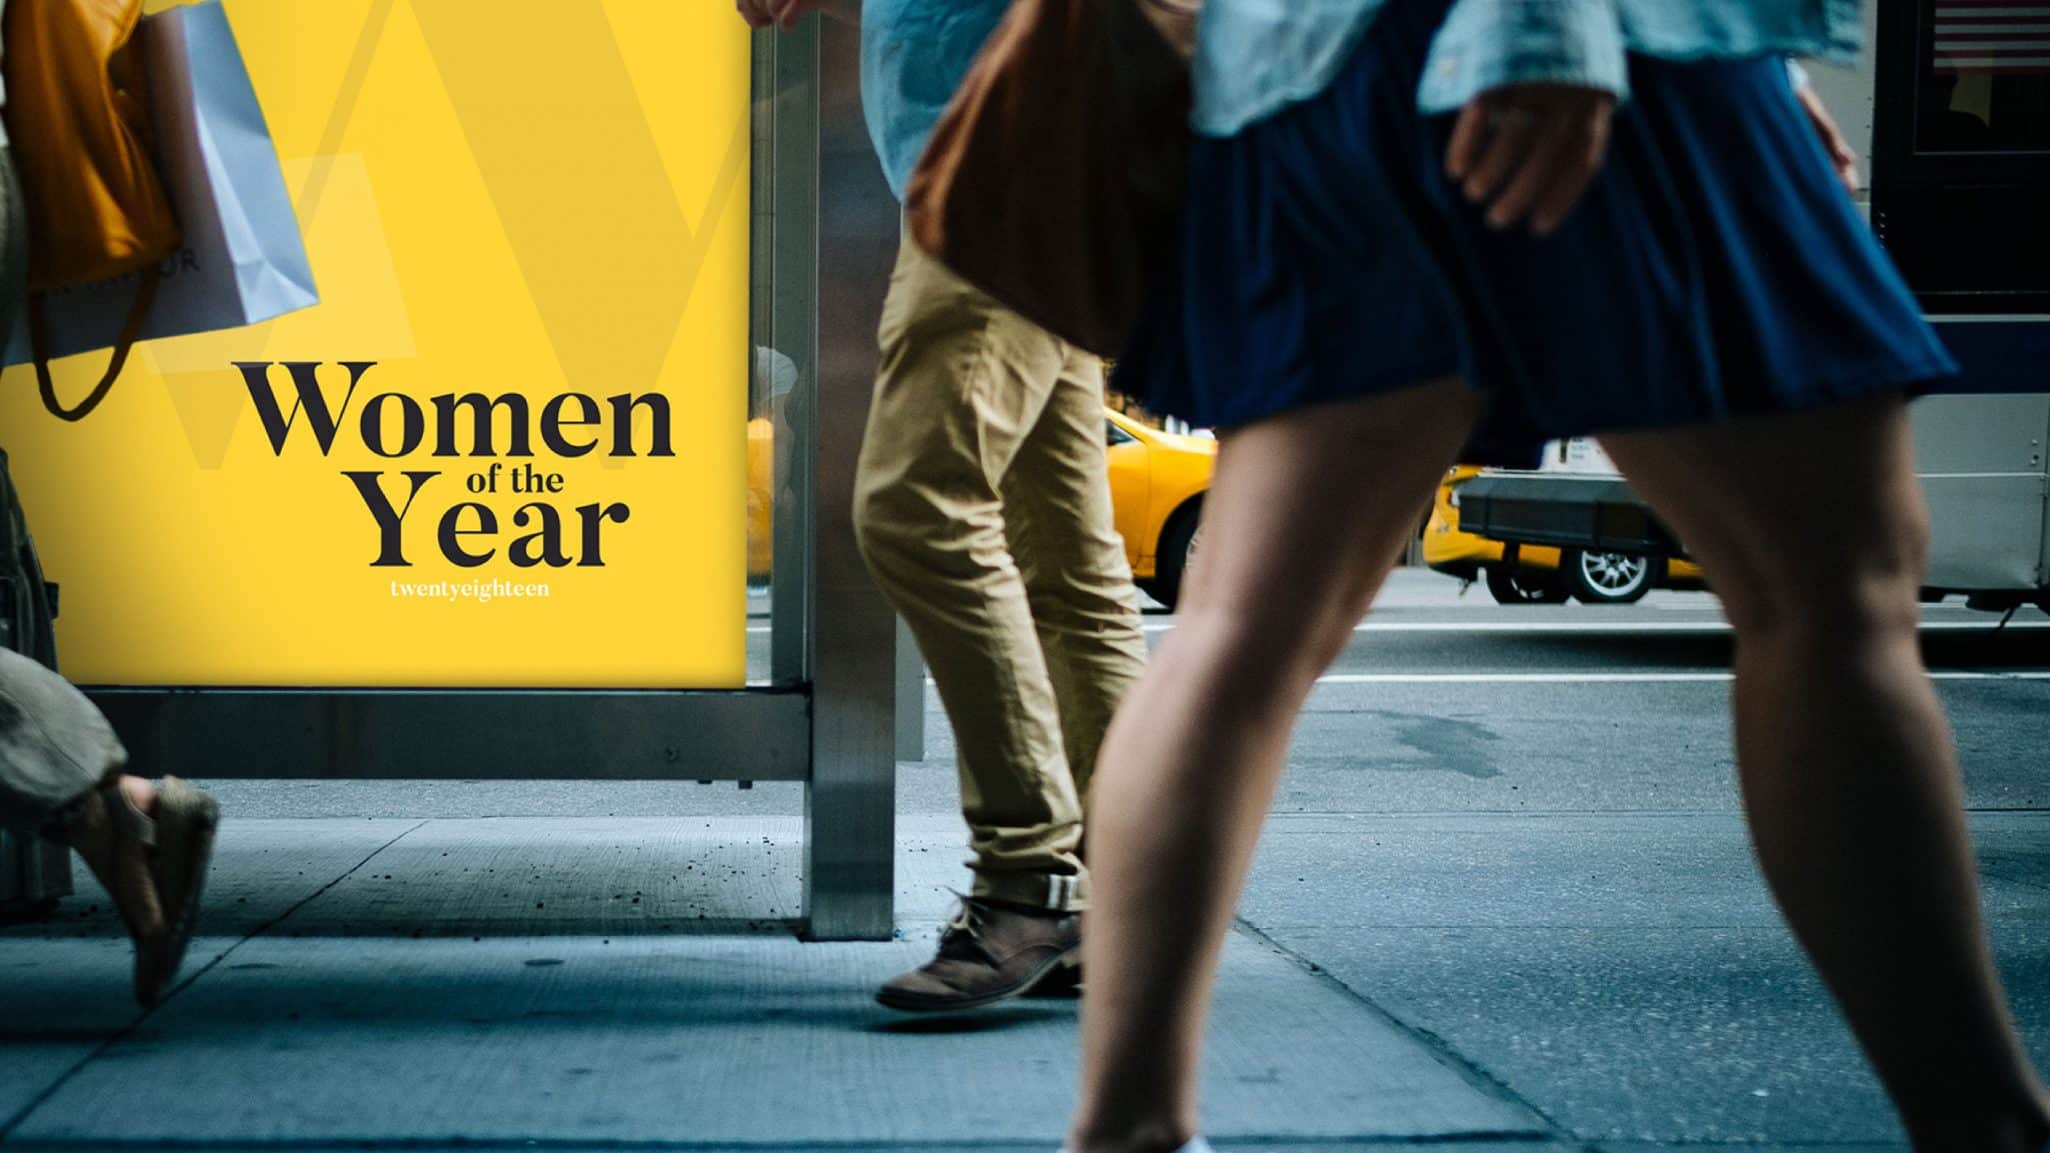 Women of the Year advertising